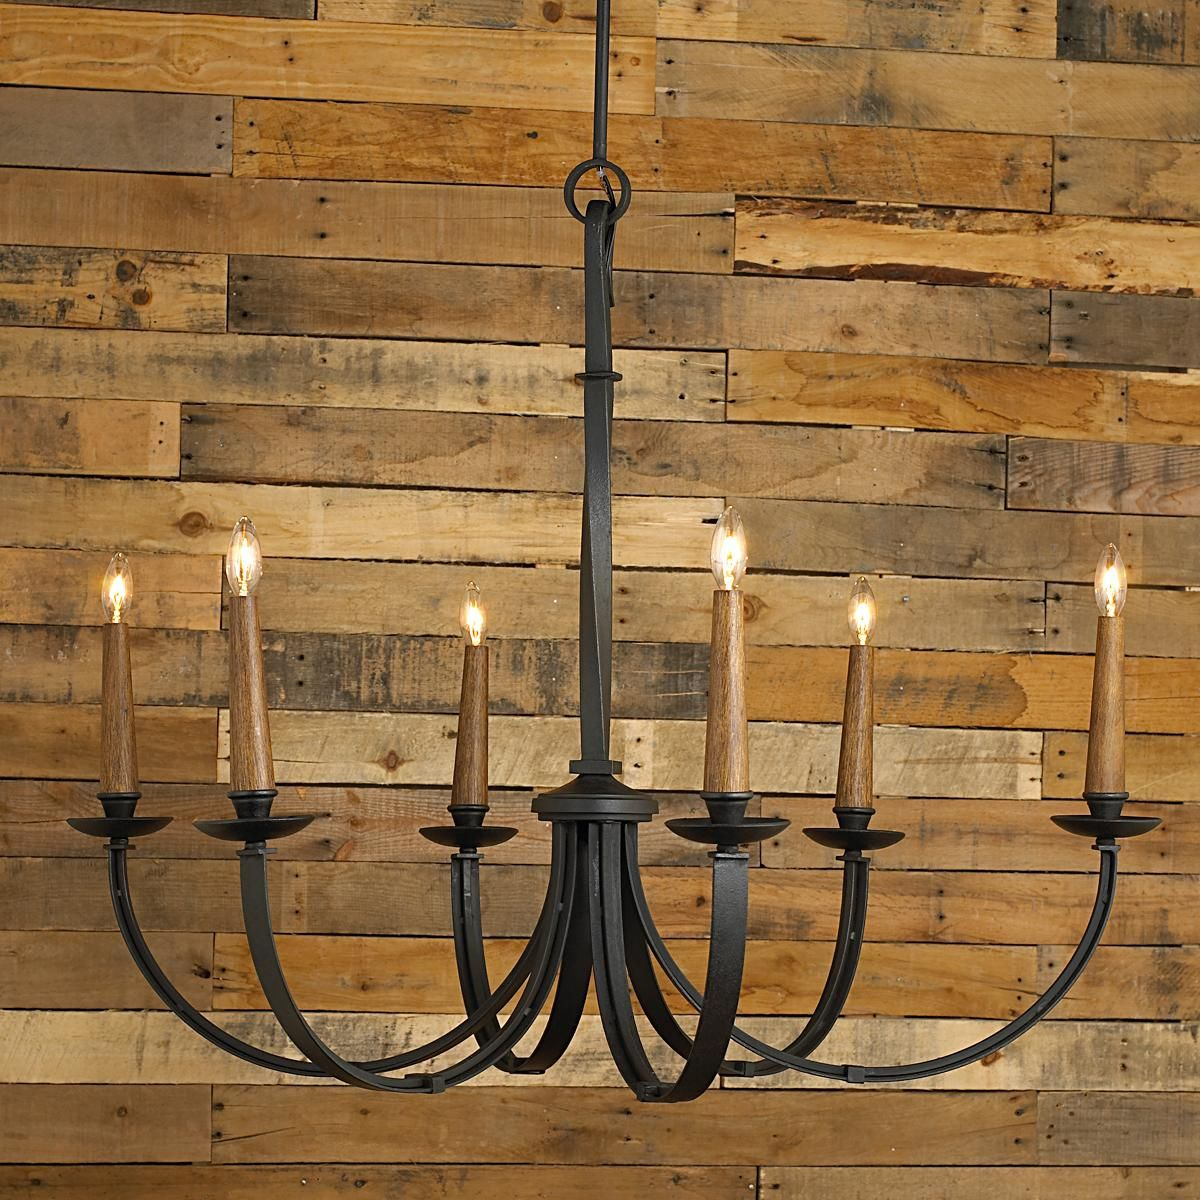 Modernized rustic iron oblong chandelier rustic irons iron modernized rustic iron chandelier large dont use both but if you arubaitofo Choice Image